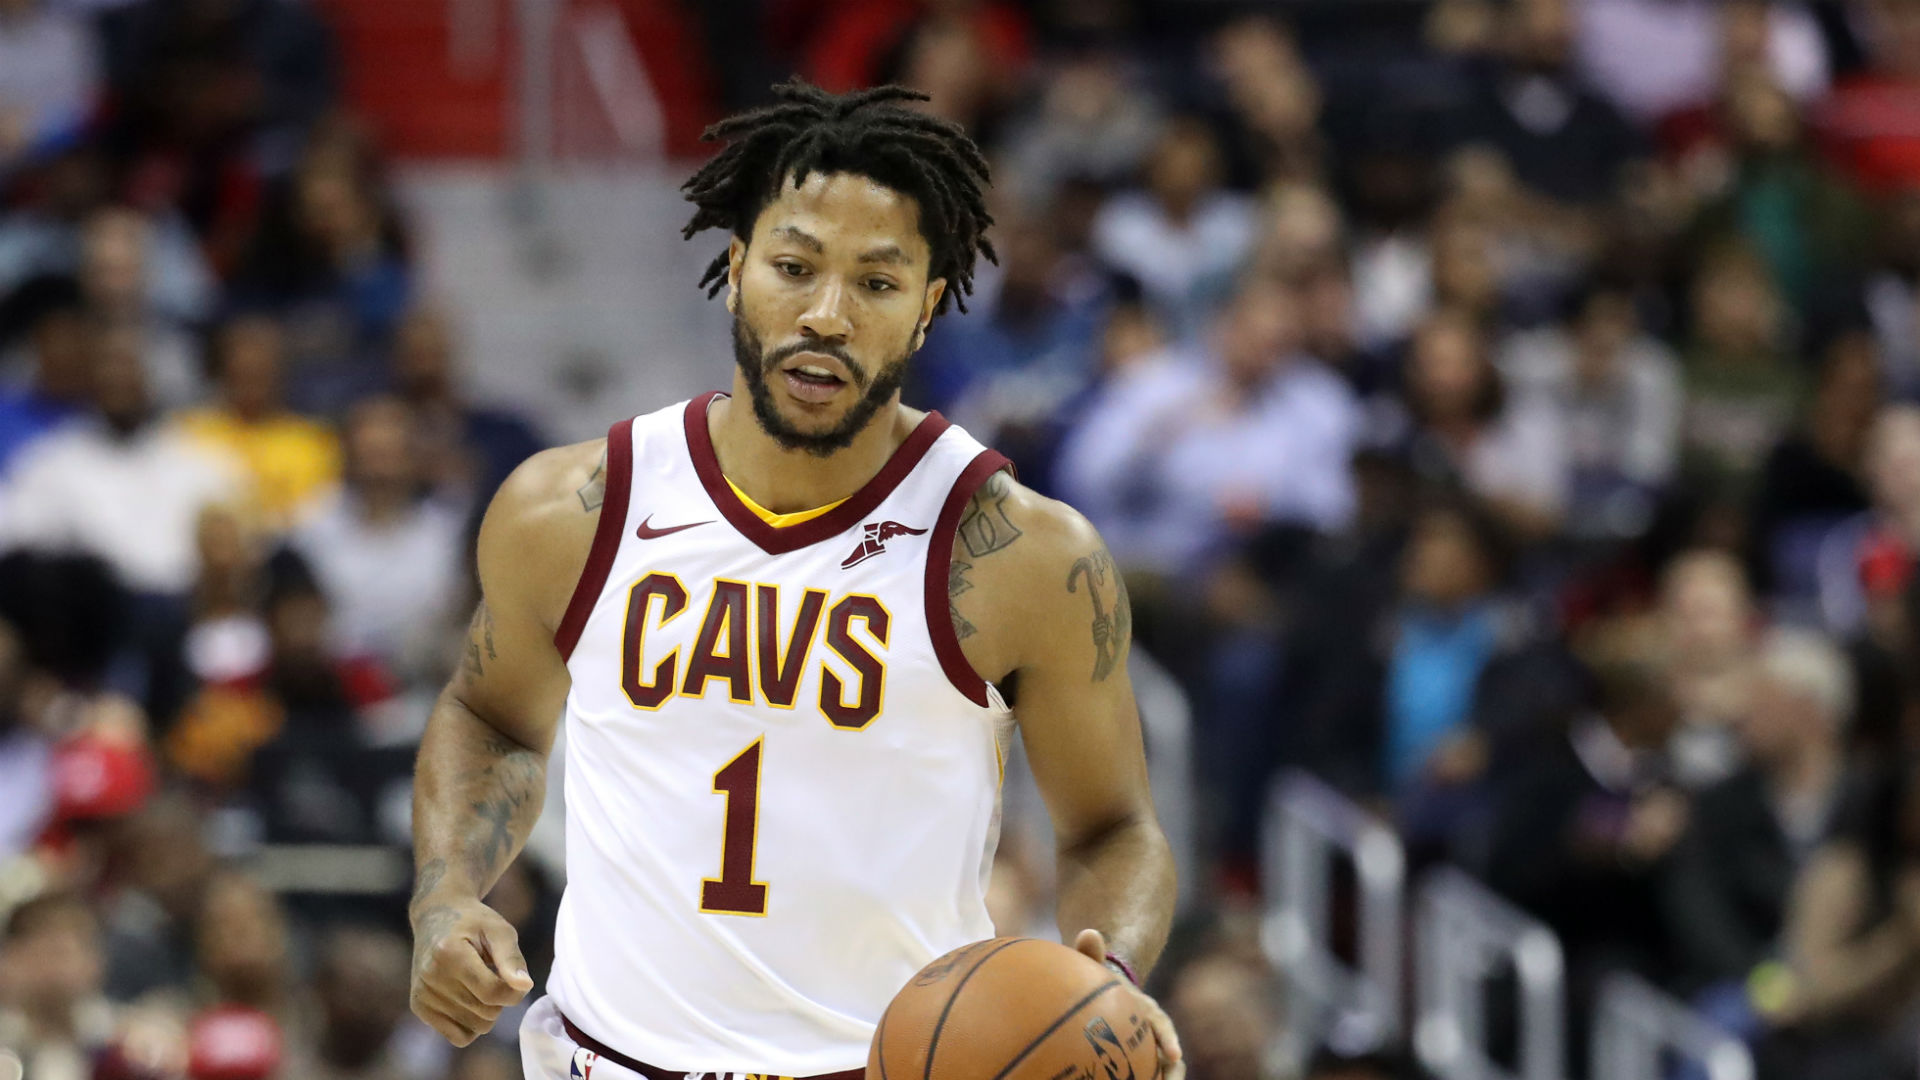 Derrick Rose is away from Cavaliers, evaluating his National Basketball Association future